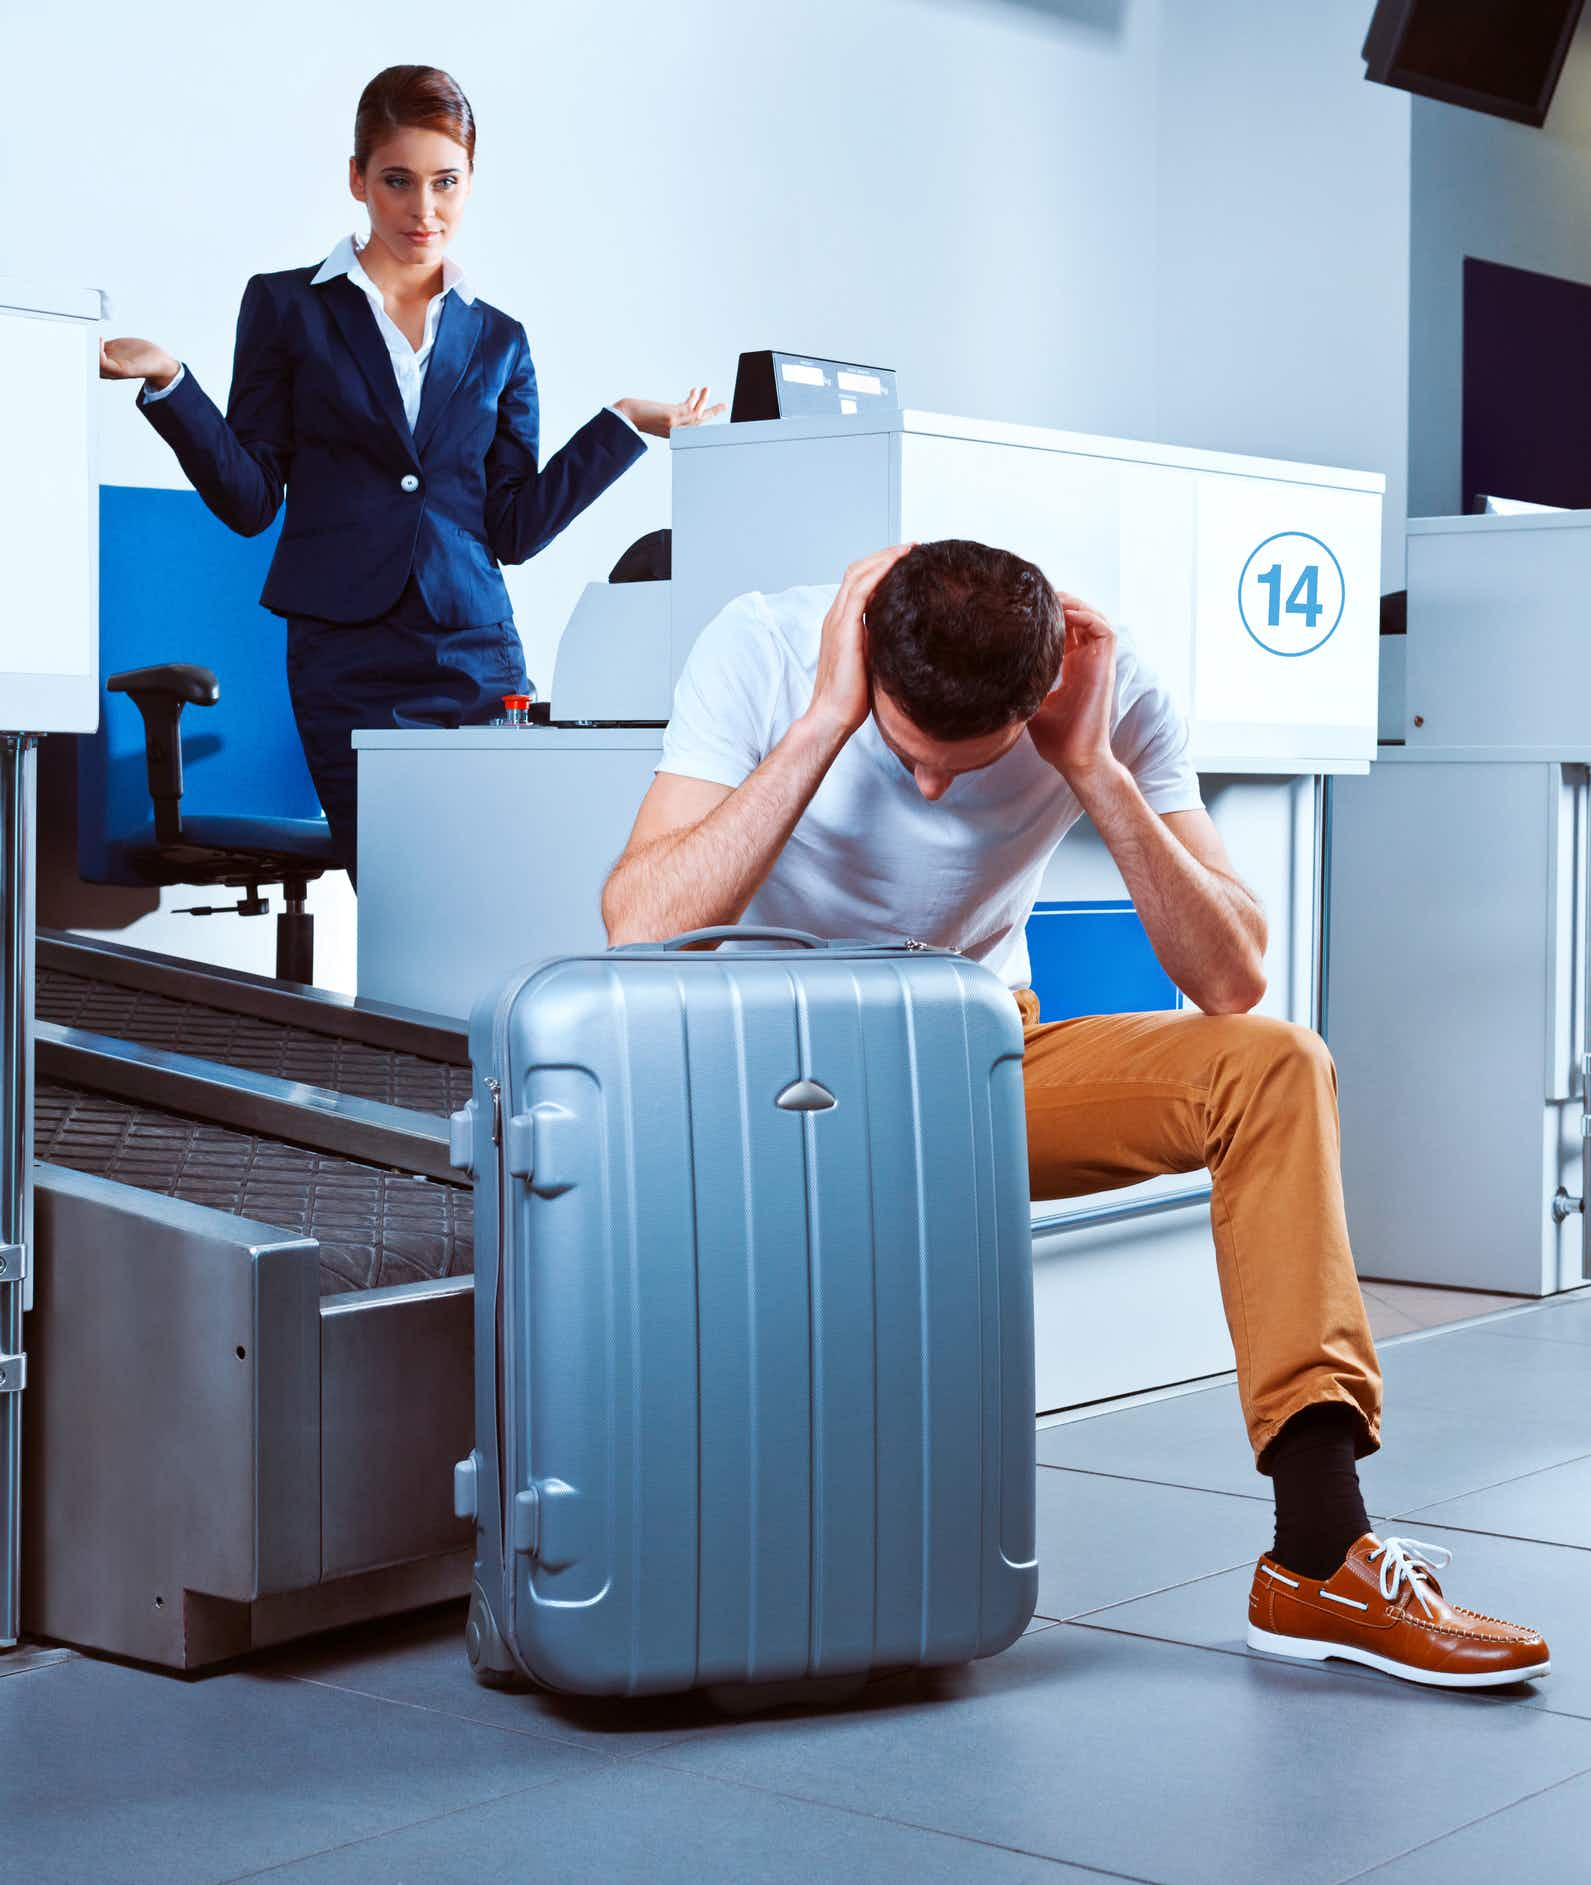 Travel hacks to get the most out of a long haul, low-cost carrier trip